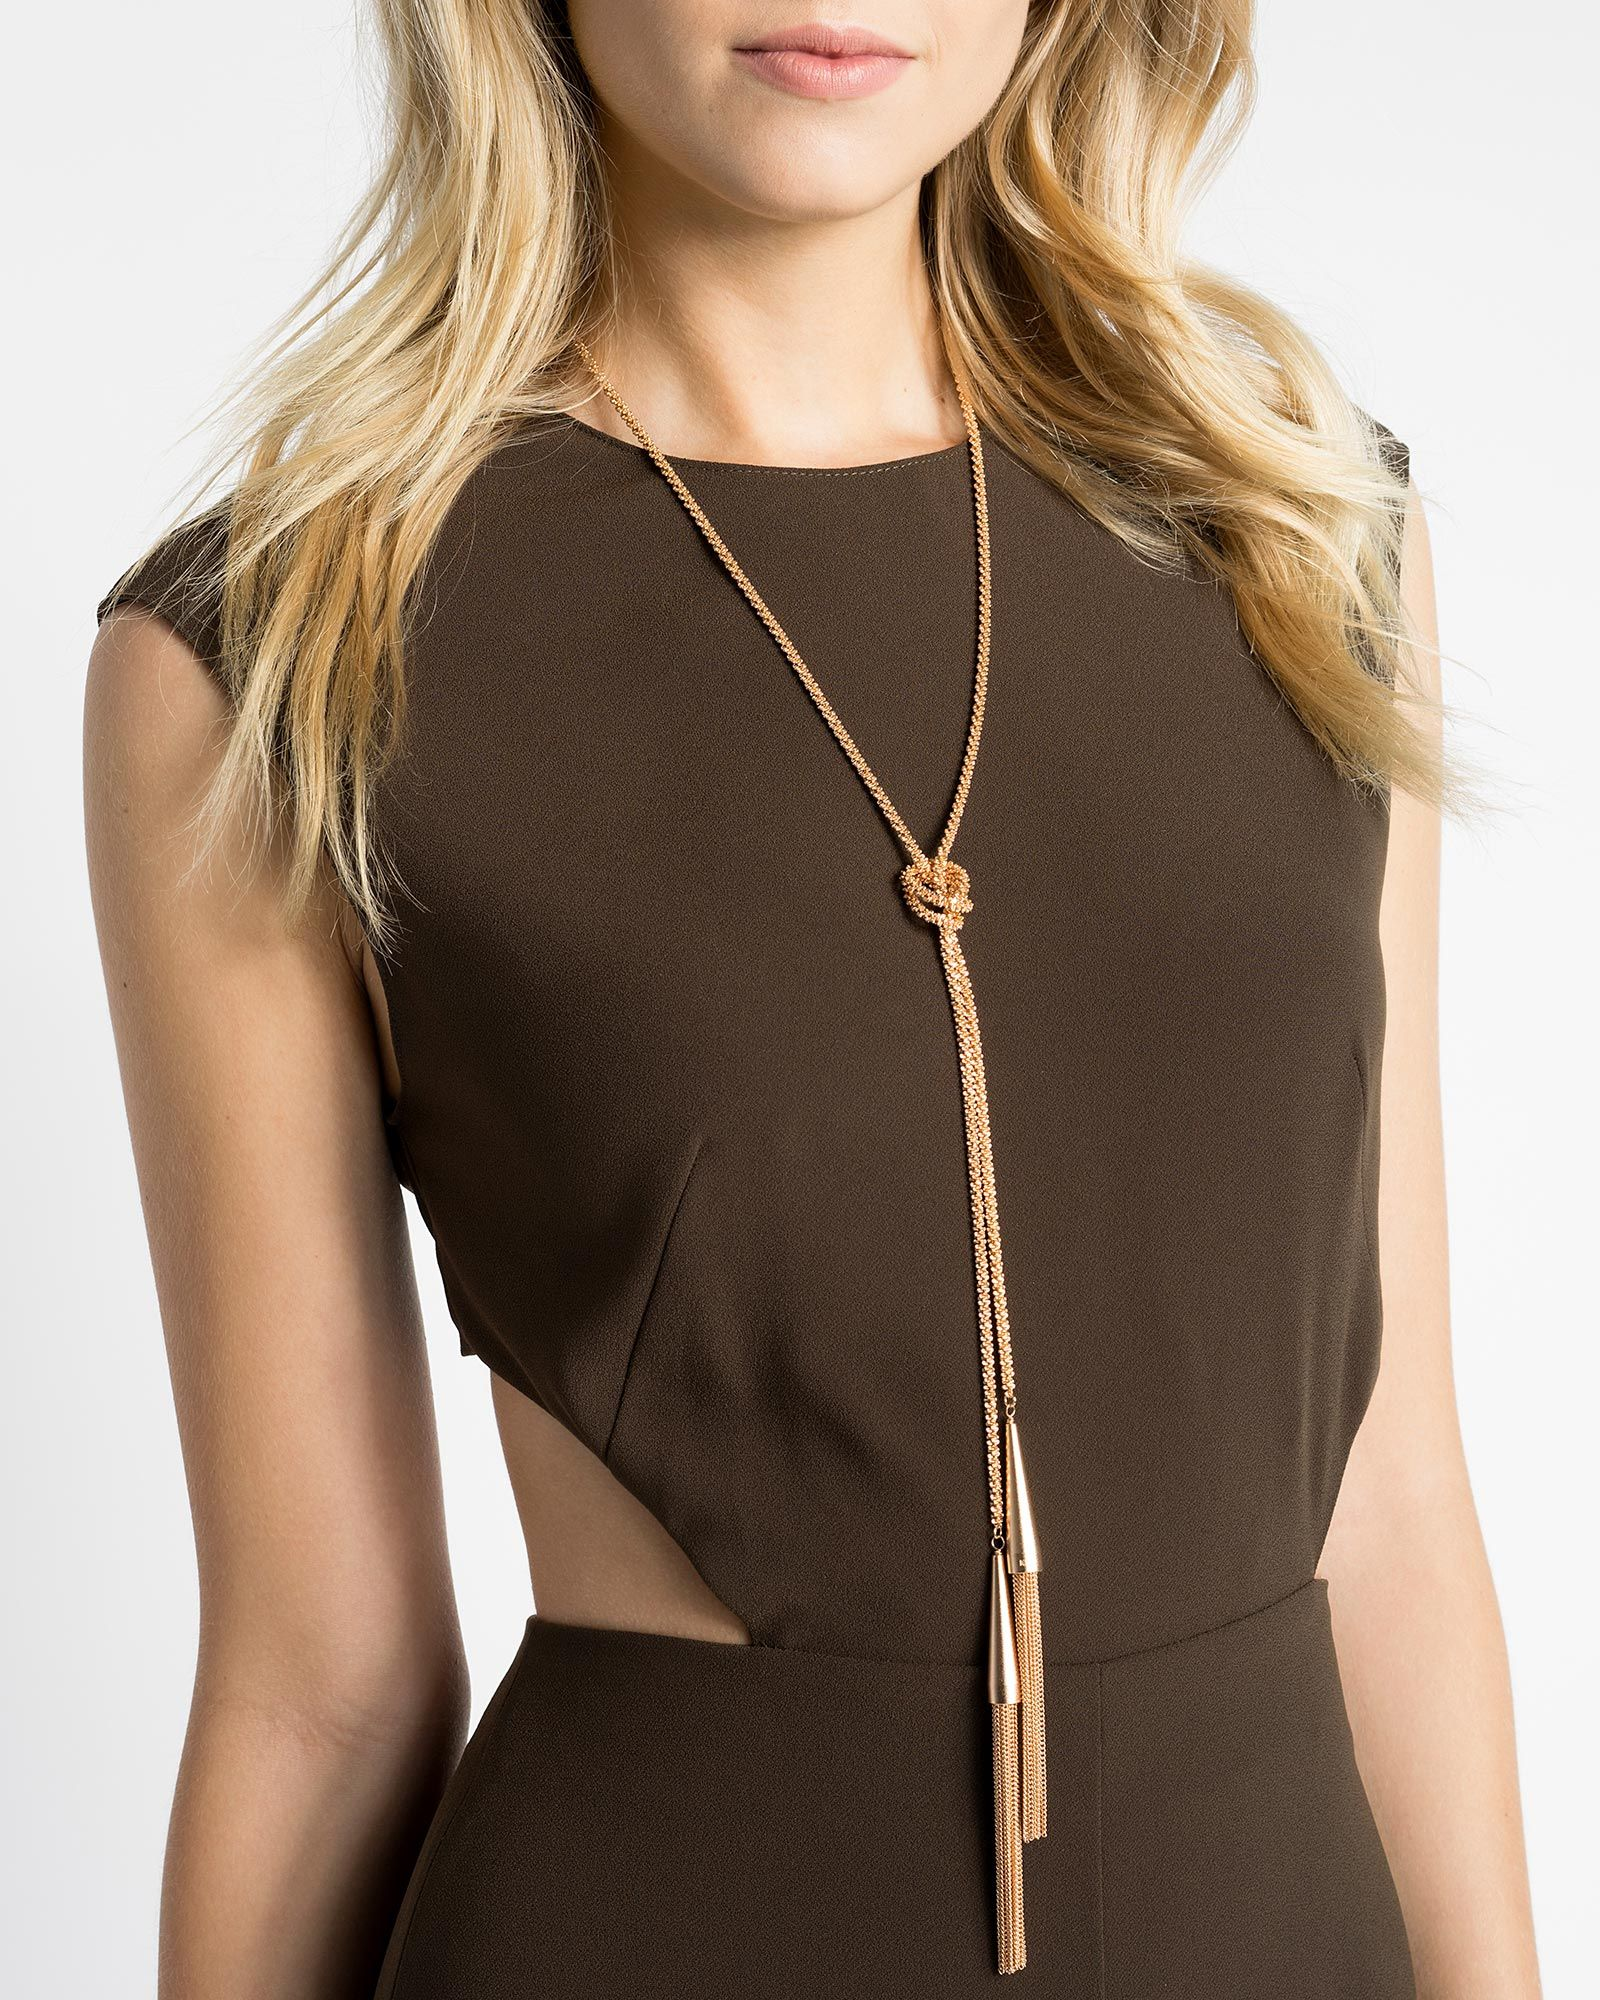 Phara Necklace in Rose Gold Wanted Pinterest Rose Gold and